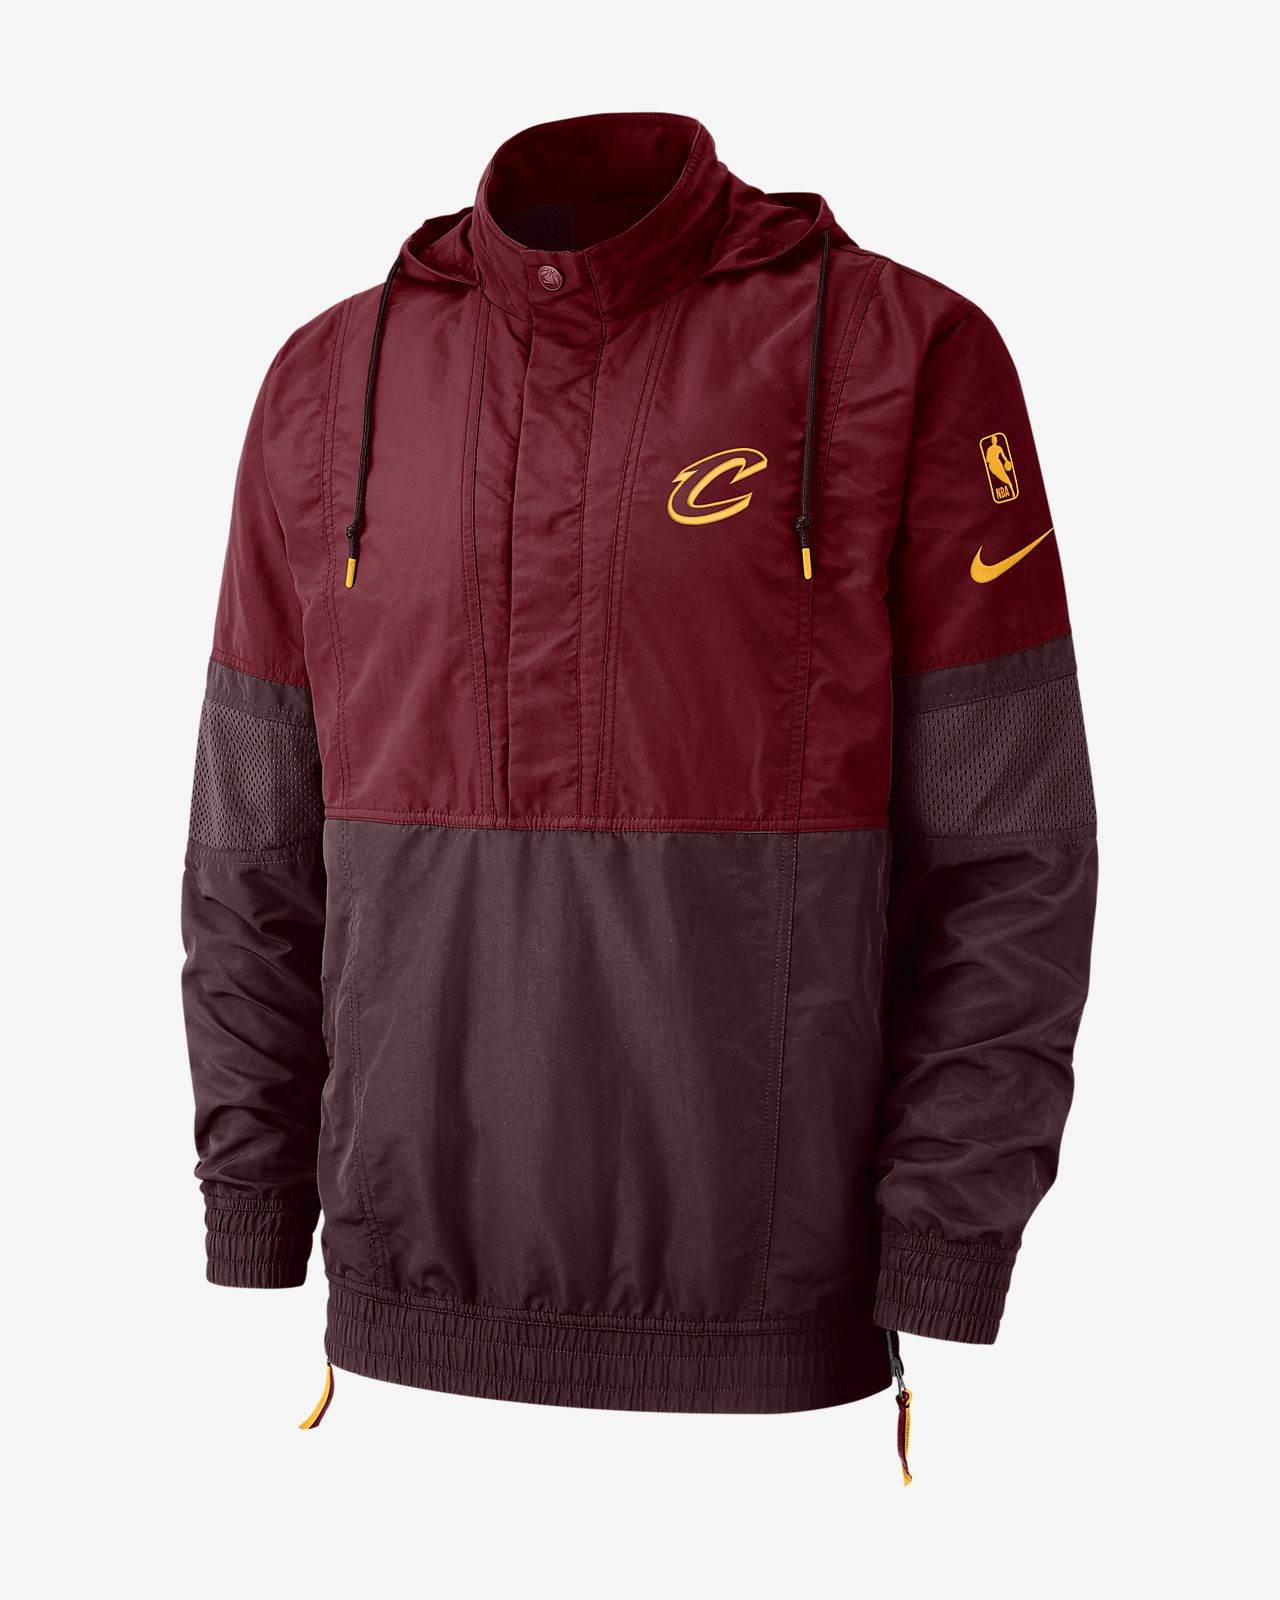 a45a4cff7 Cleveland Cavaliers Nike Courtside Men s Hooded NBA Jacket. Nike.com GB